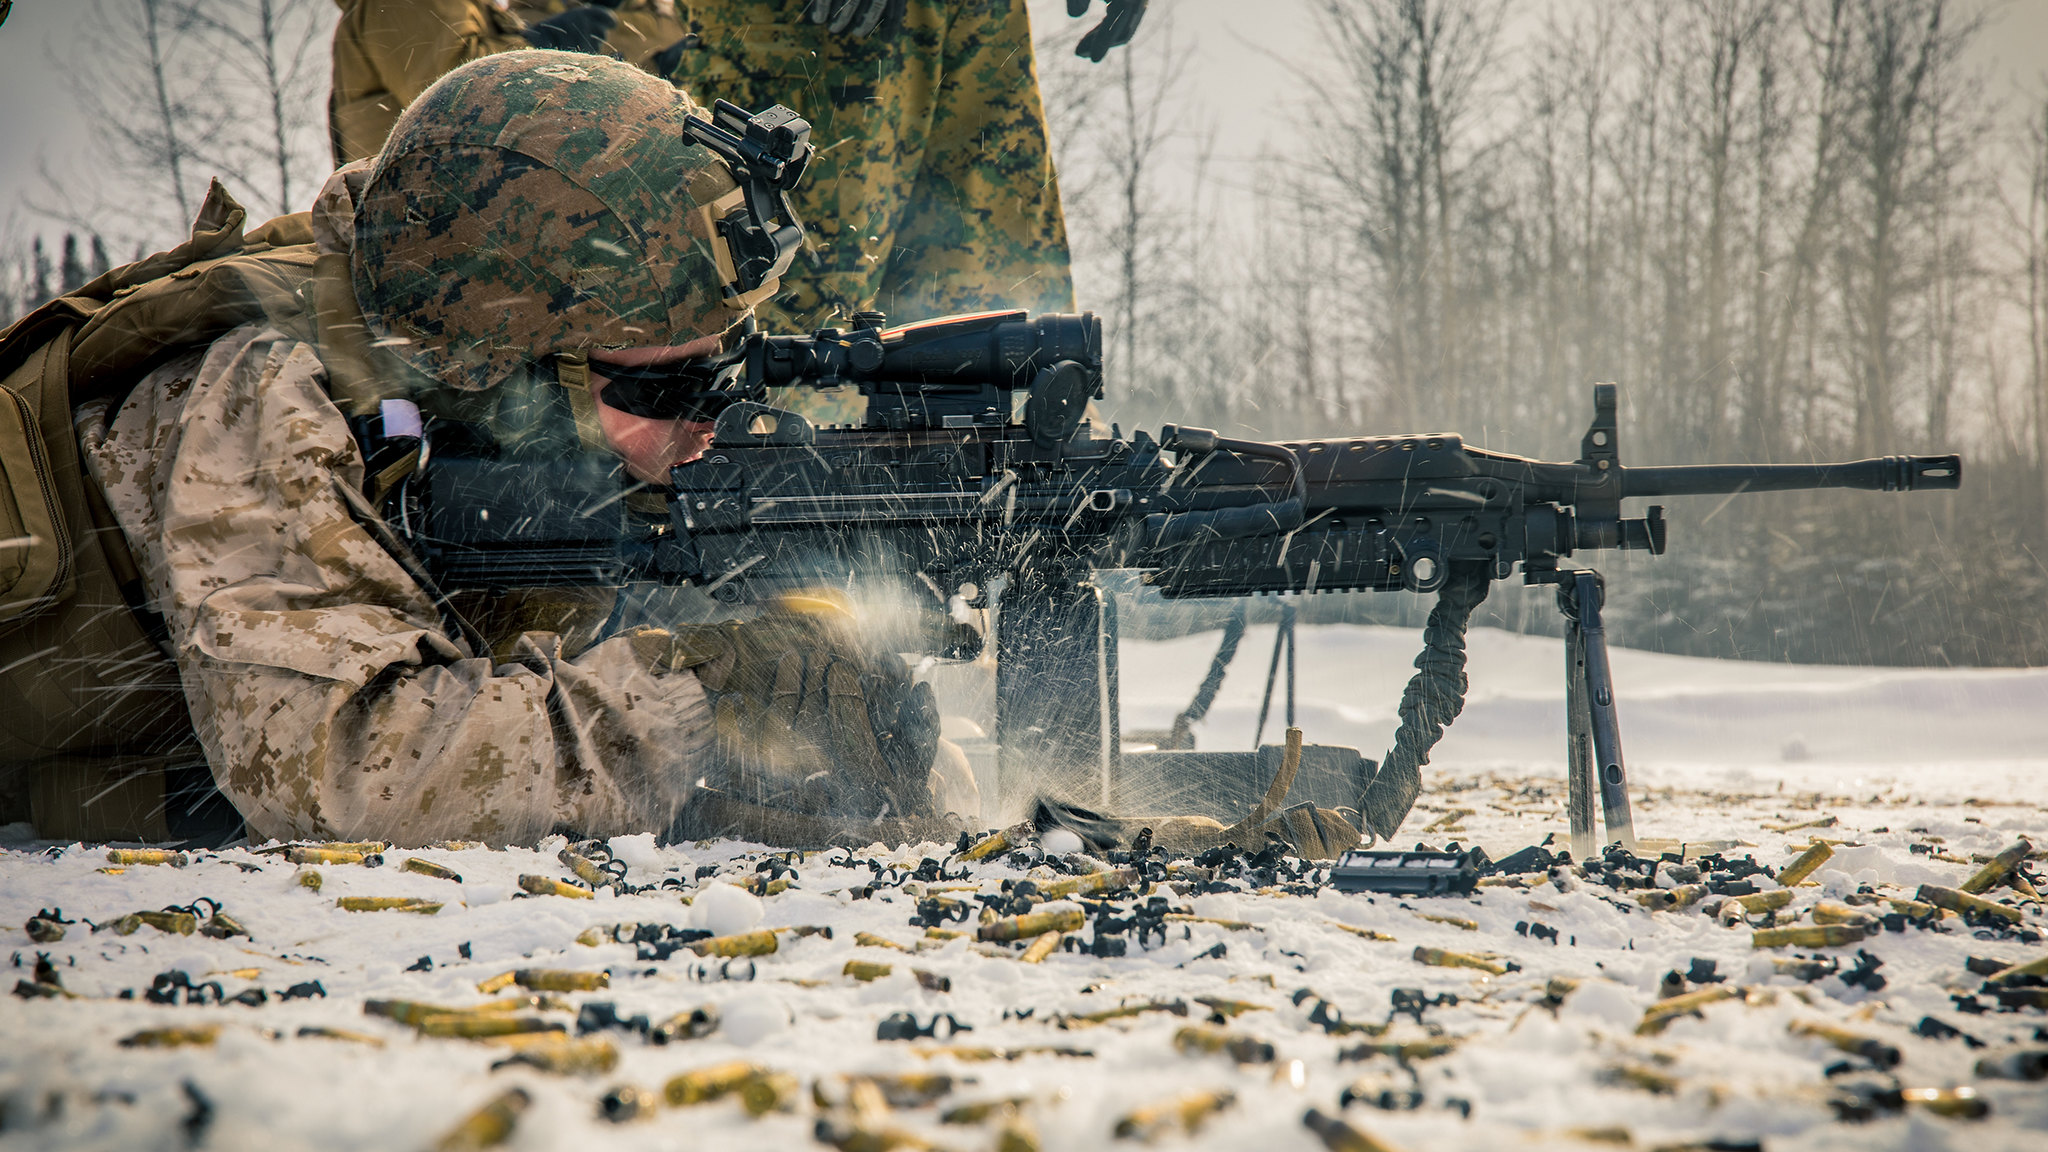 Lance Cpl. Darren J. Duhaime, a small arms repairer/technician with 5th Battalion, 11th Marine Regiment, 1st Marine Division, engages a target with an M249 light machine gun during a machine gun range at Fort Greely, Alaska, Feb. 22, 2020, in preparation for exercise Arctic Edge 2020. (Lance Cpl. Jose Gonzalez/Marine Corps)